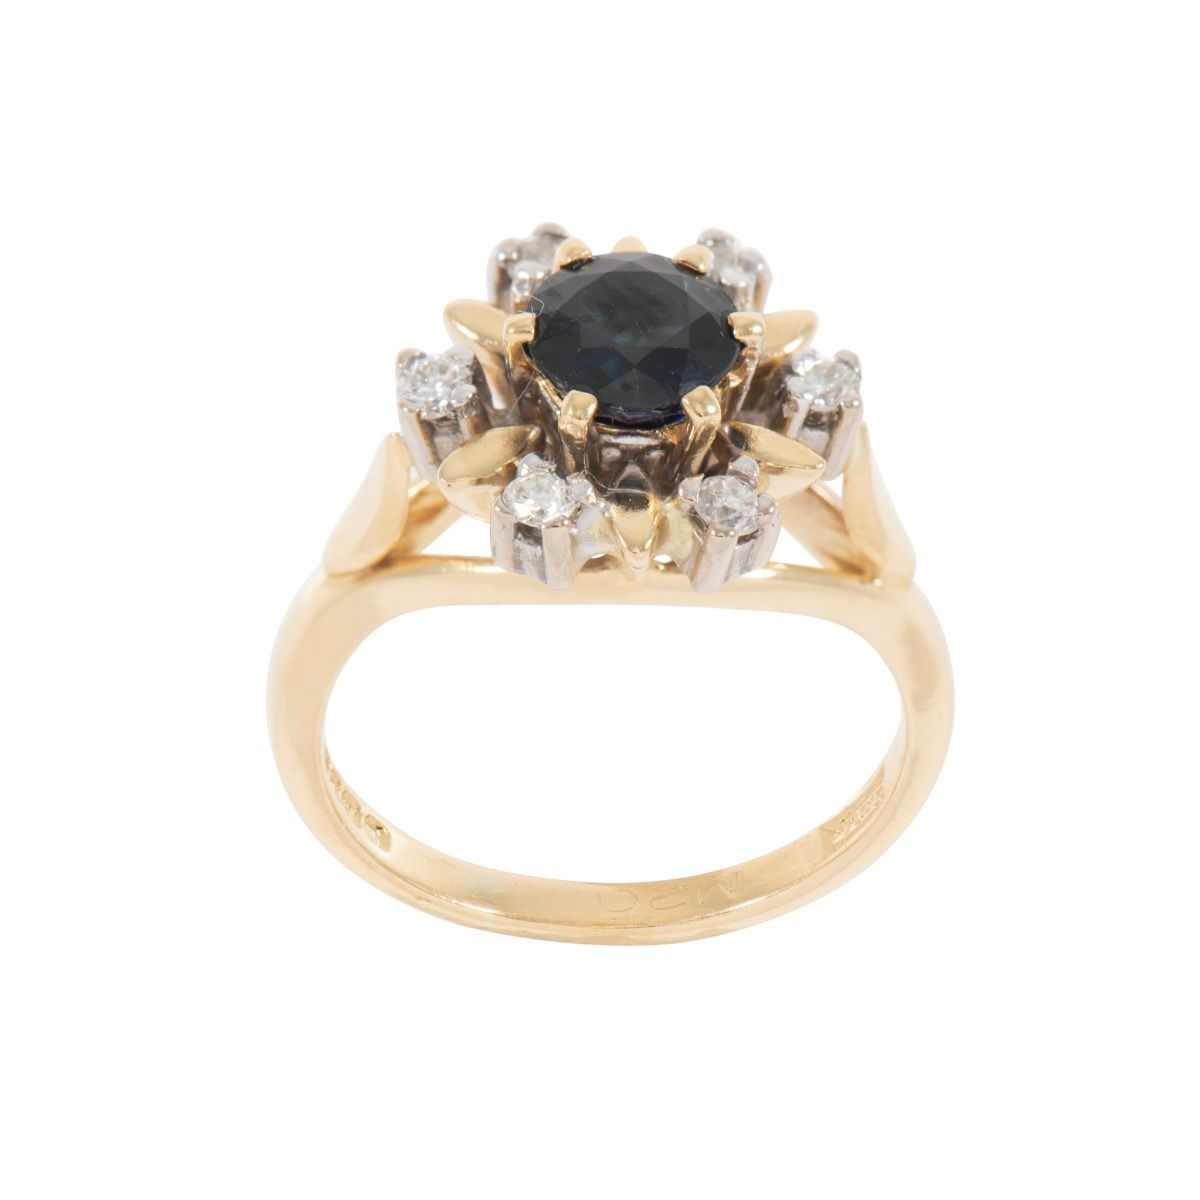 18ct Yellow Gold Diamond & Sapphire Cluster Ring Size K